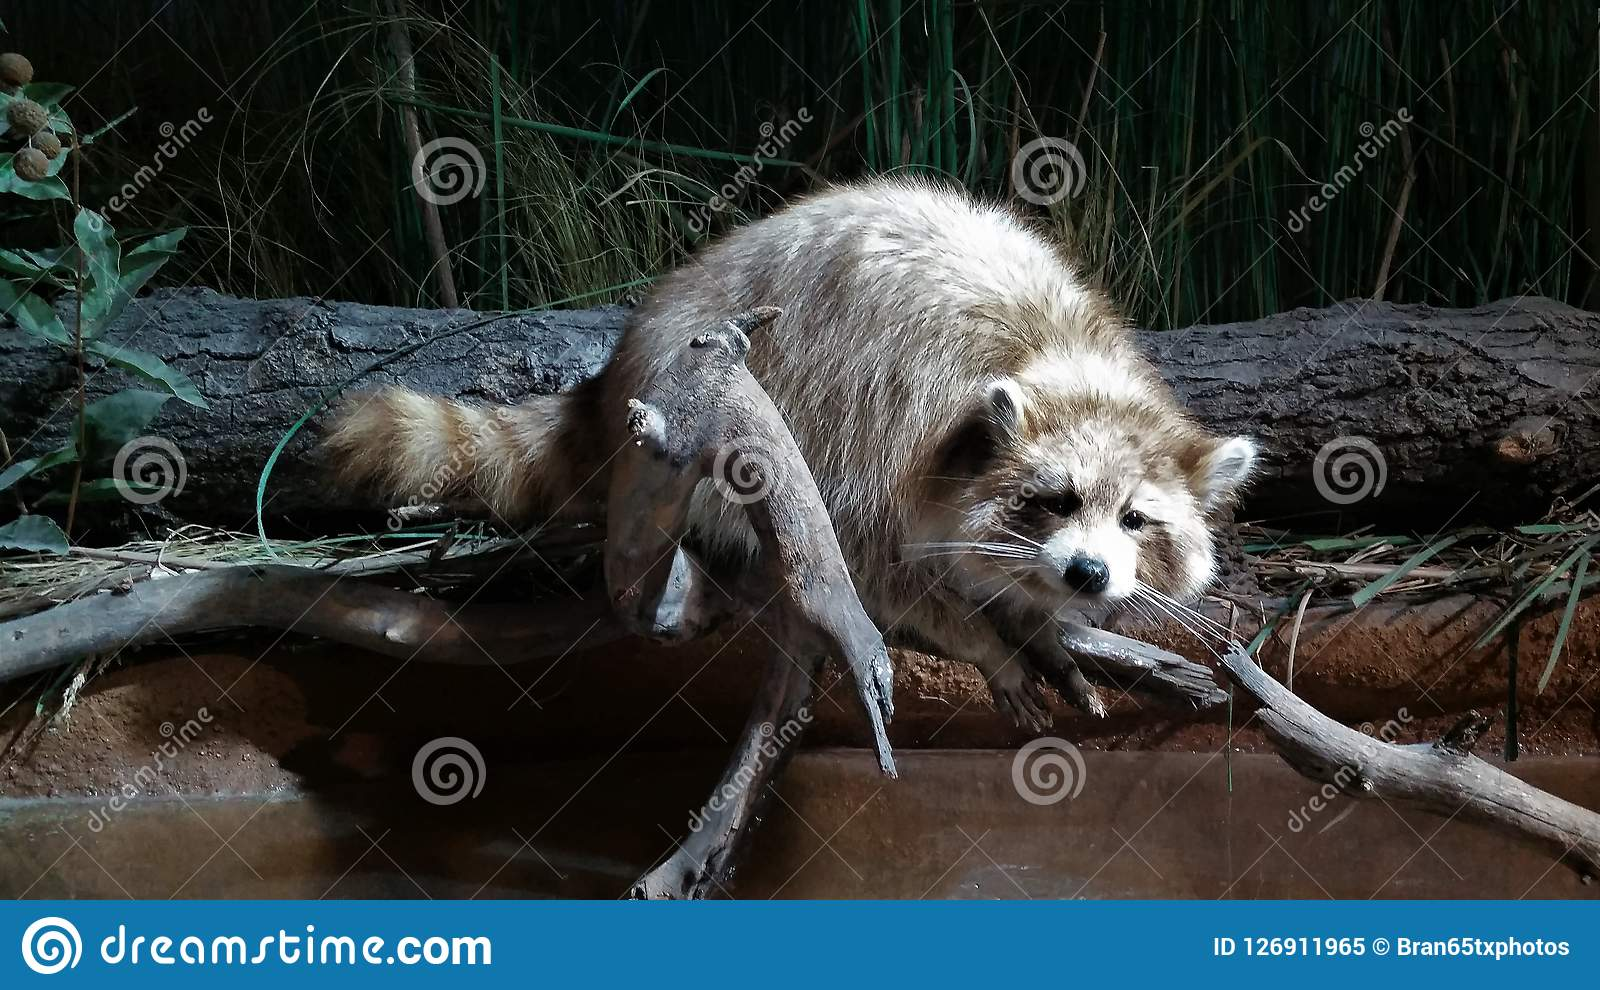 A Raccoon Resting On A Limb